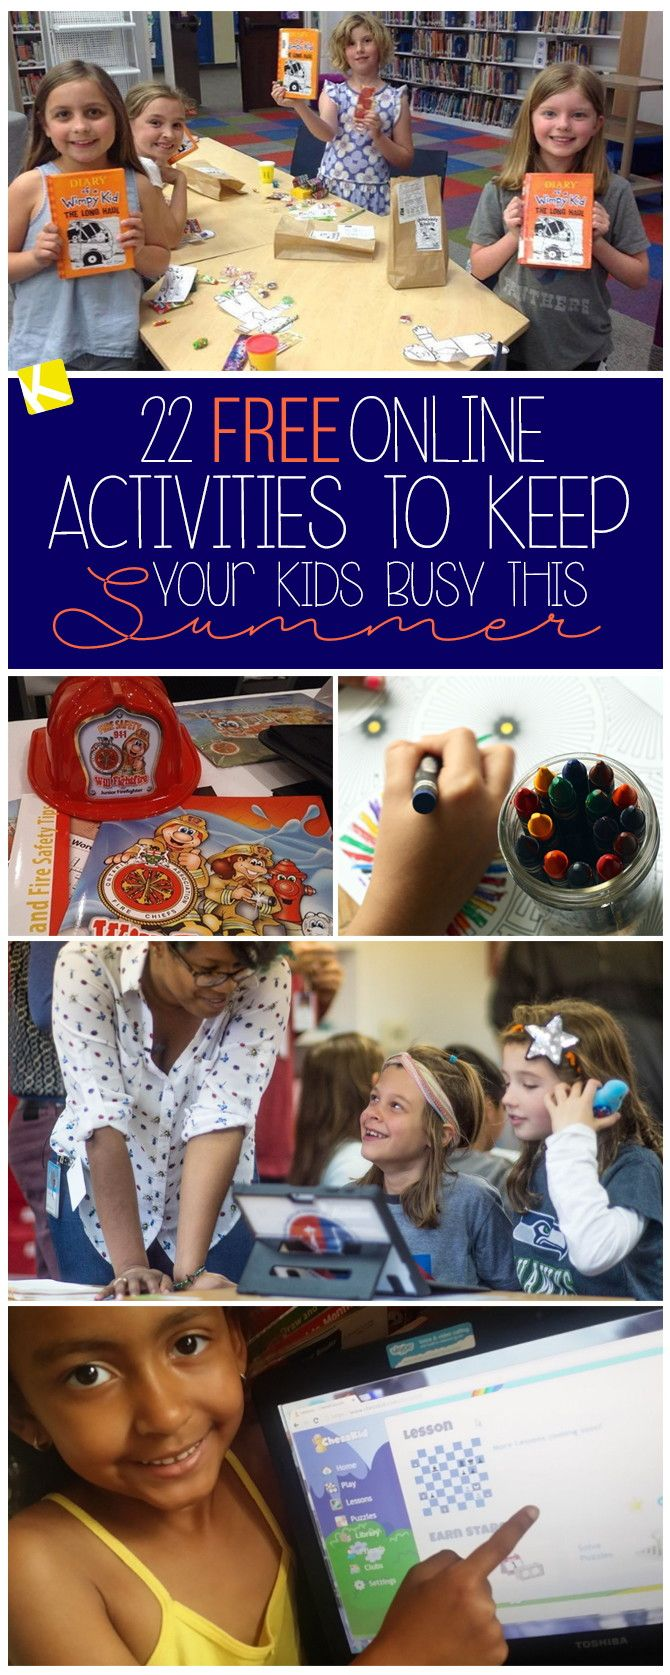 22 Free Online Activities to Keep Your Kids Busy This Summer | Business for  kids, Activities for kids, Helping kids